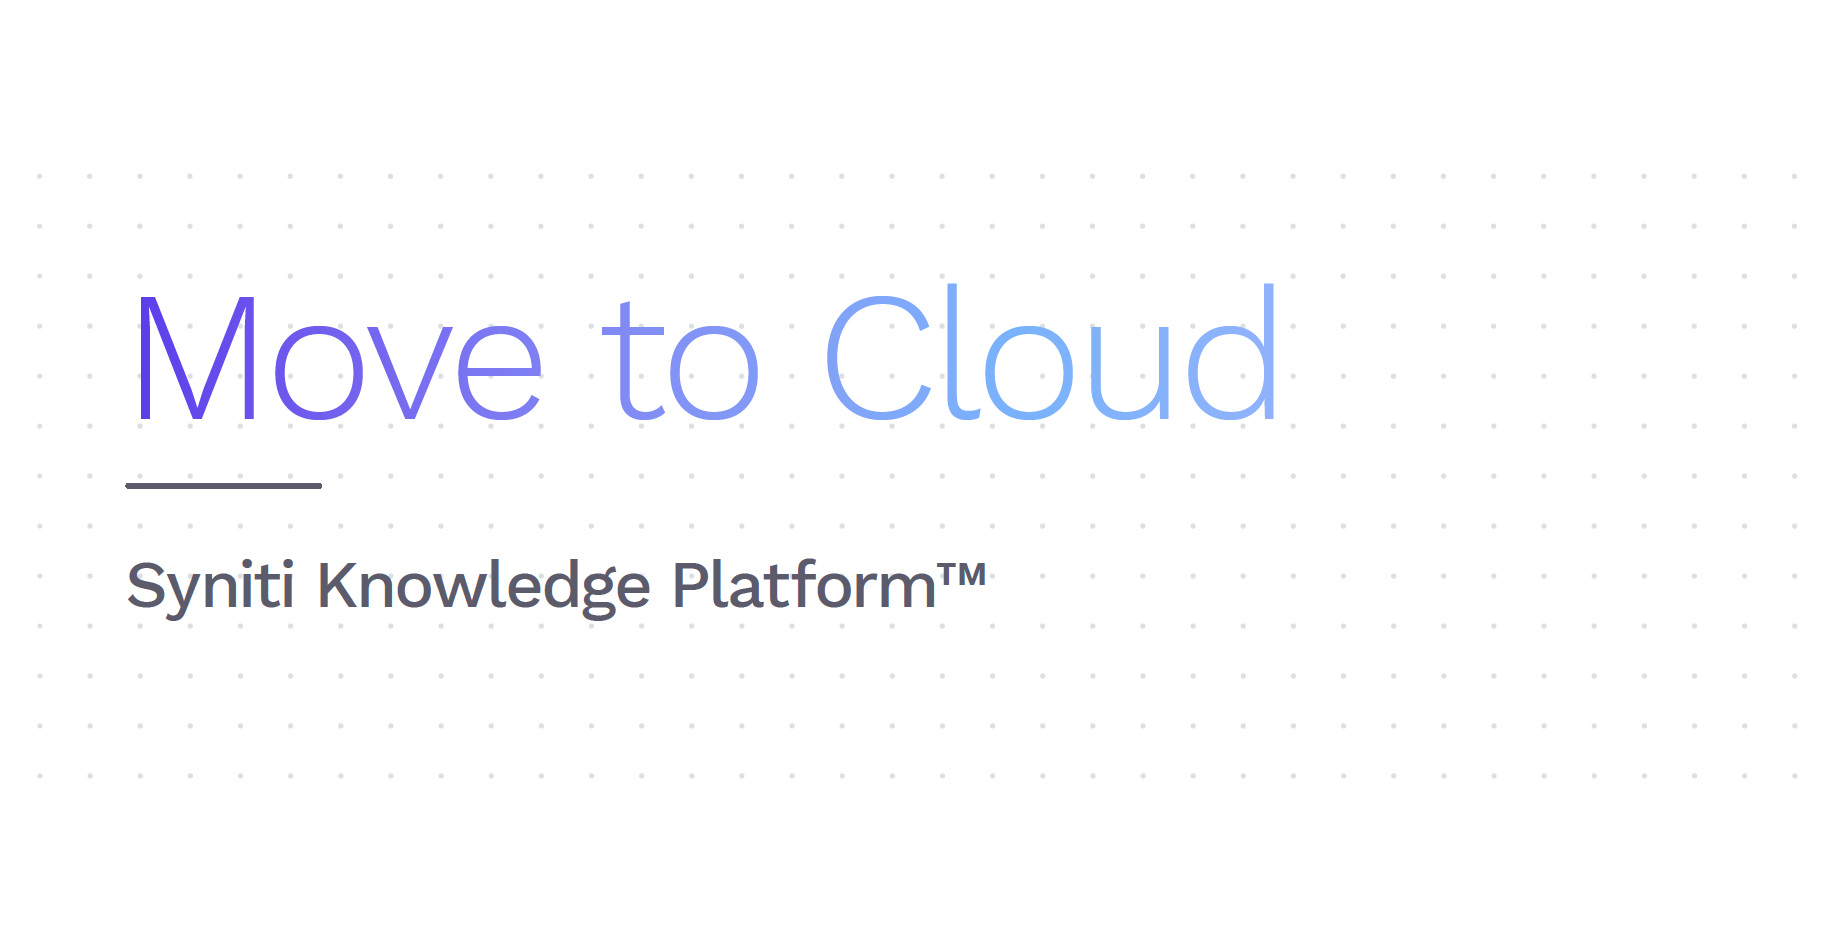 Syniti Knowledge Platform: Move to Cloud